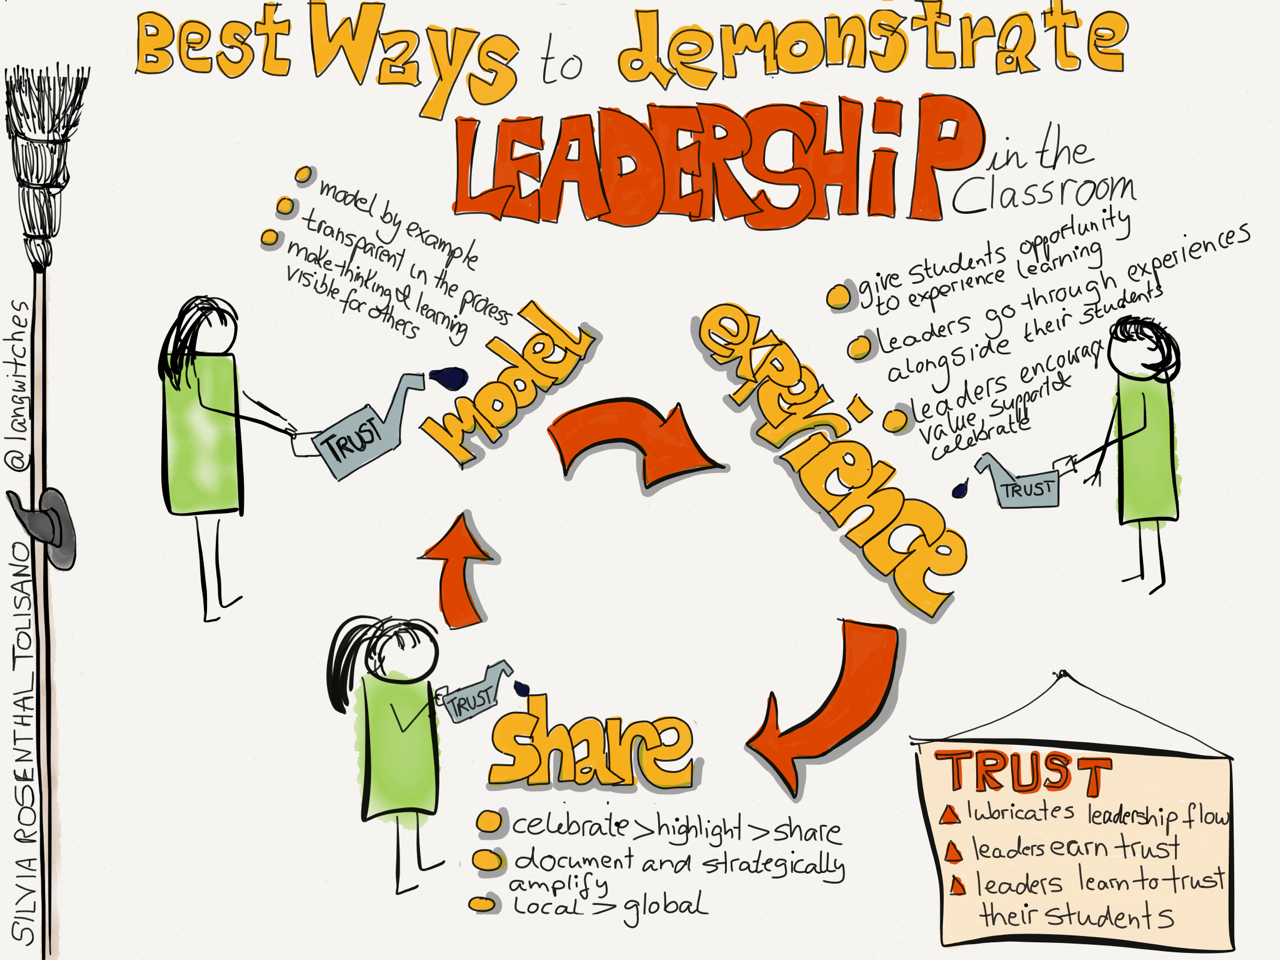 What are the Best Ways a Teacher can Demonstrate Leadership